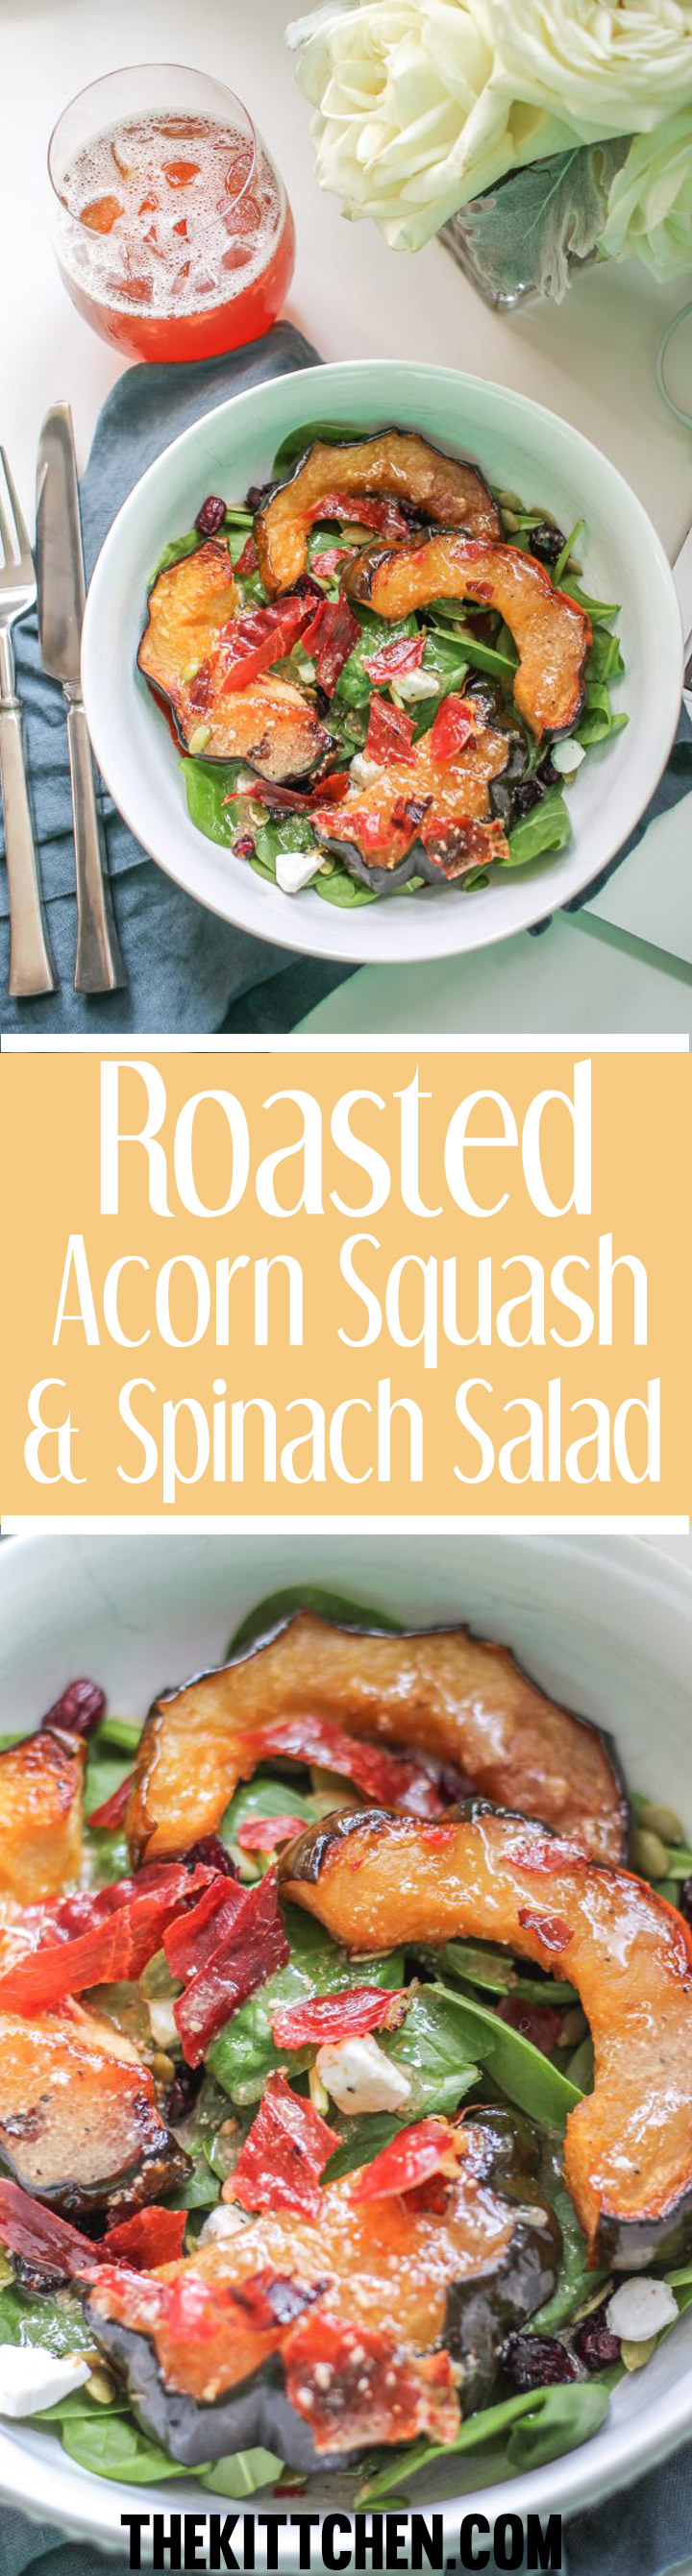 Roasted Acorn Squash and Spinach Salad - an incredible salad recipe.